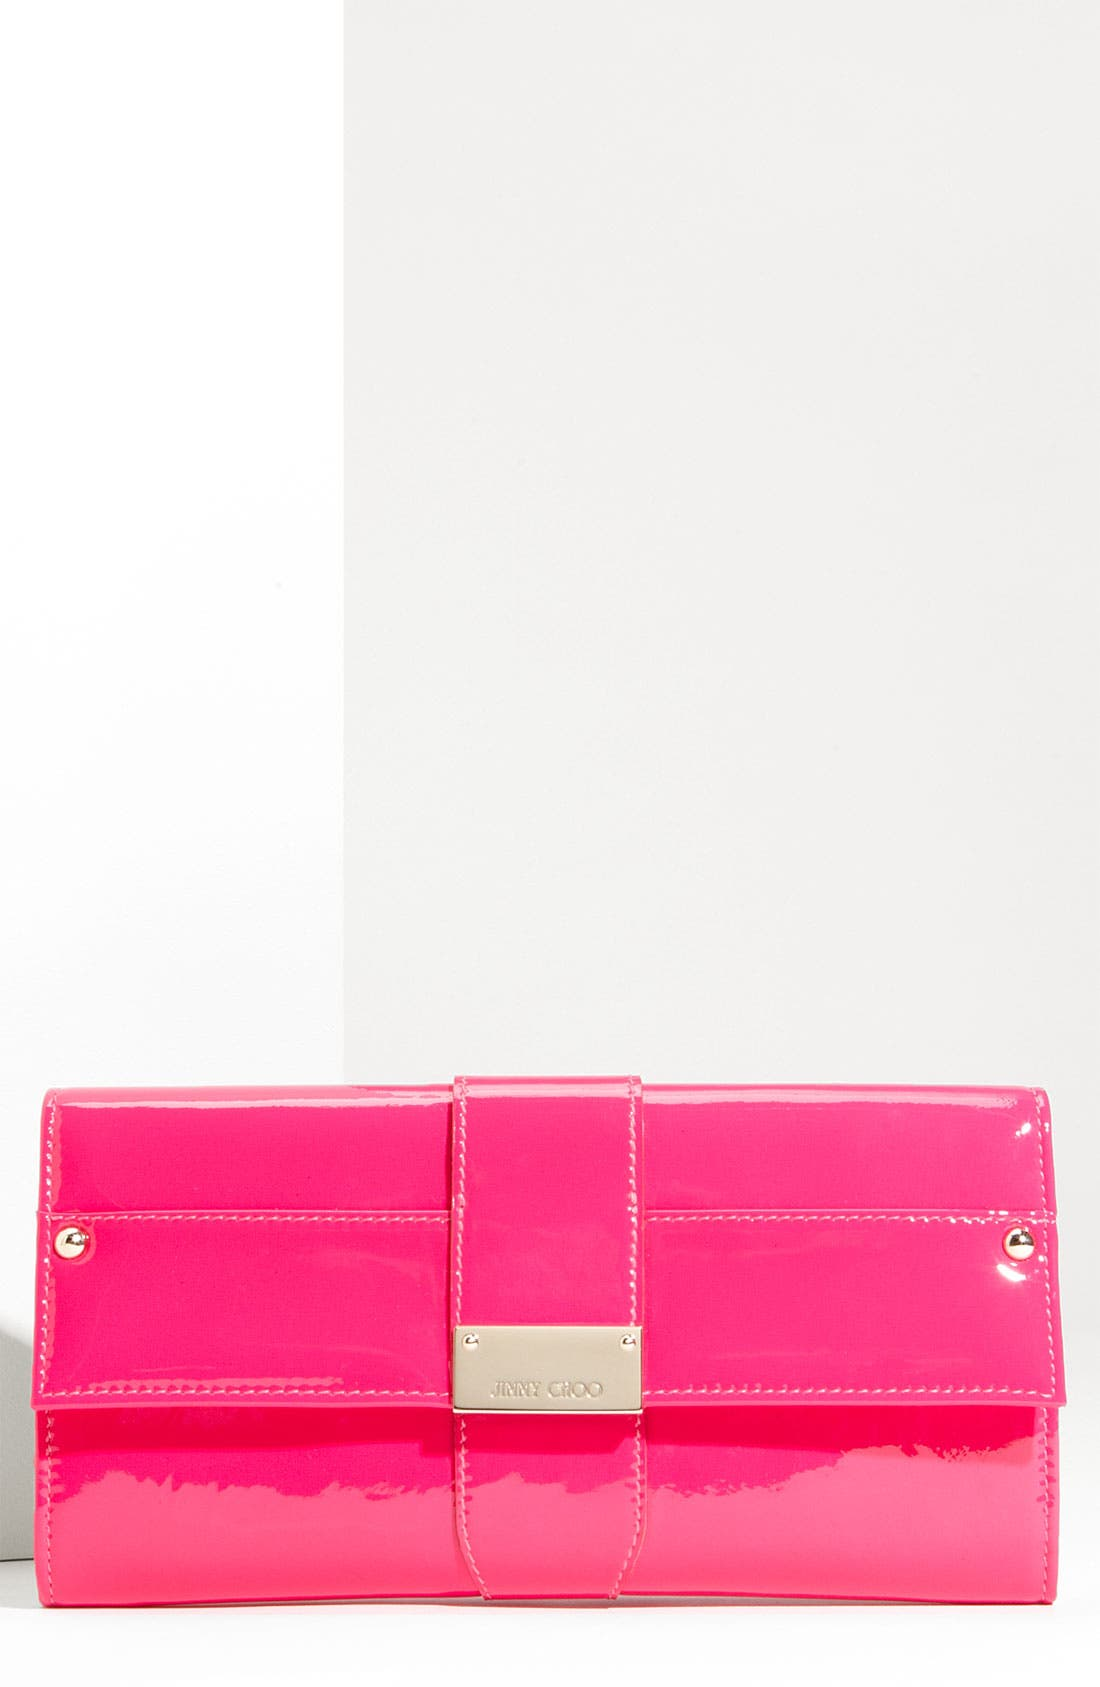 Alternate Image 1 Selected - Jimmy Choo 'Ubai' Patent Leather Clutch